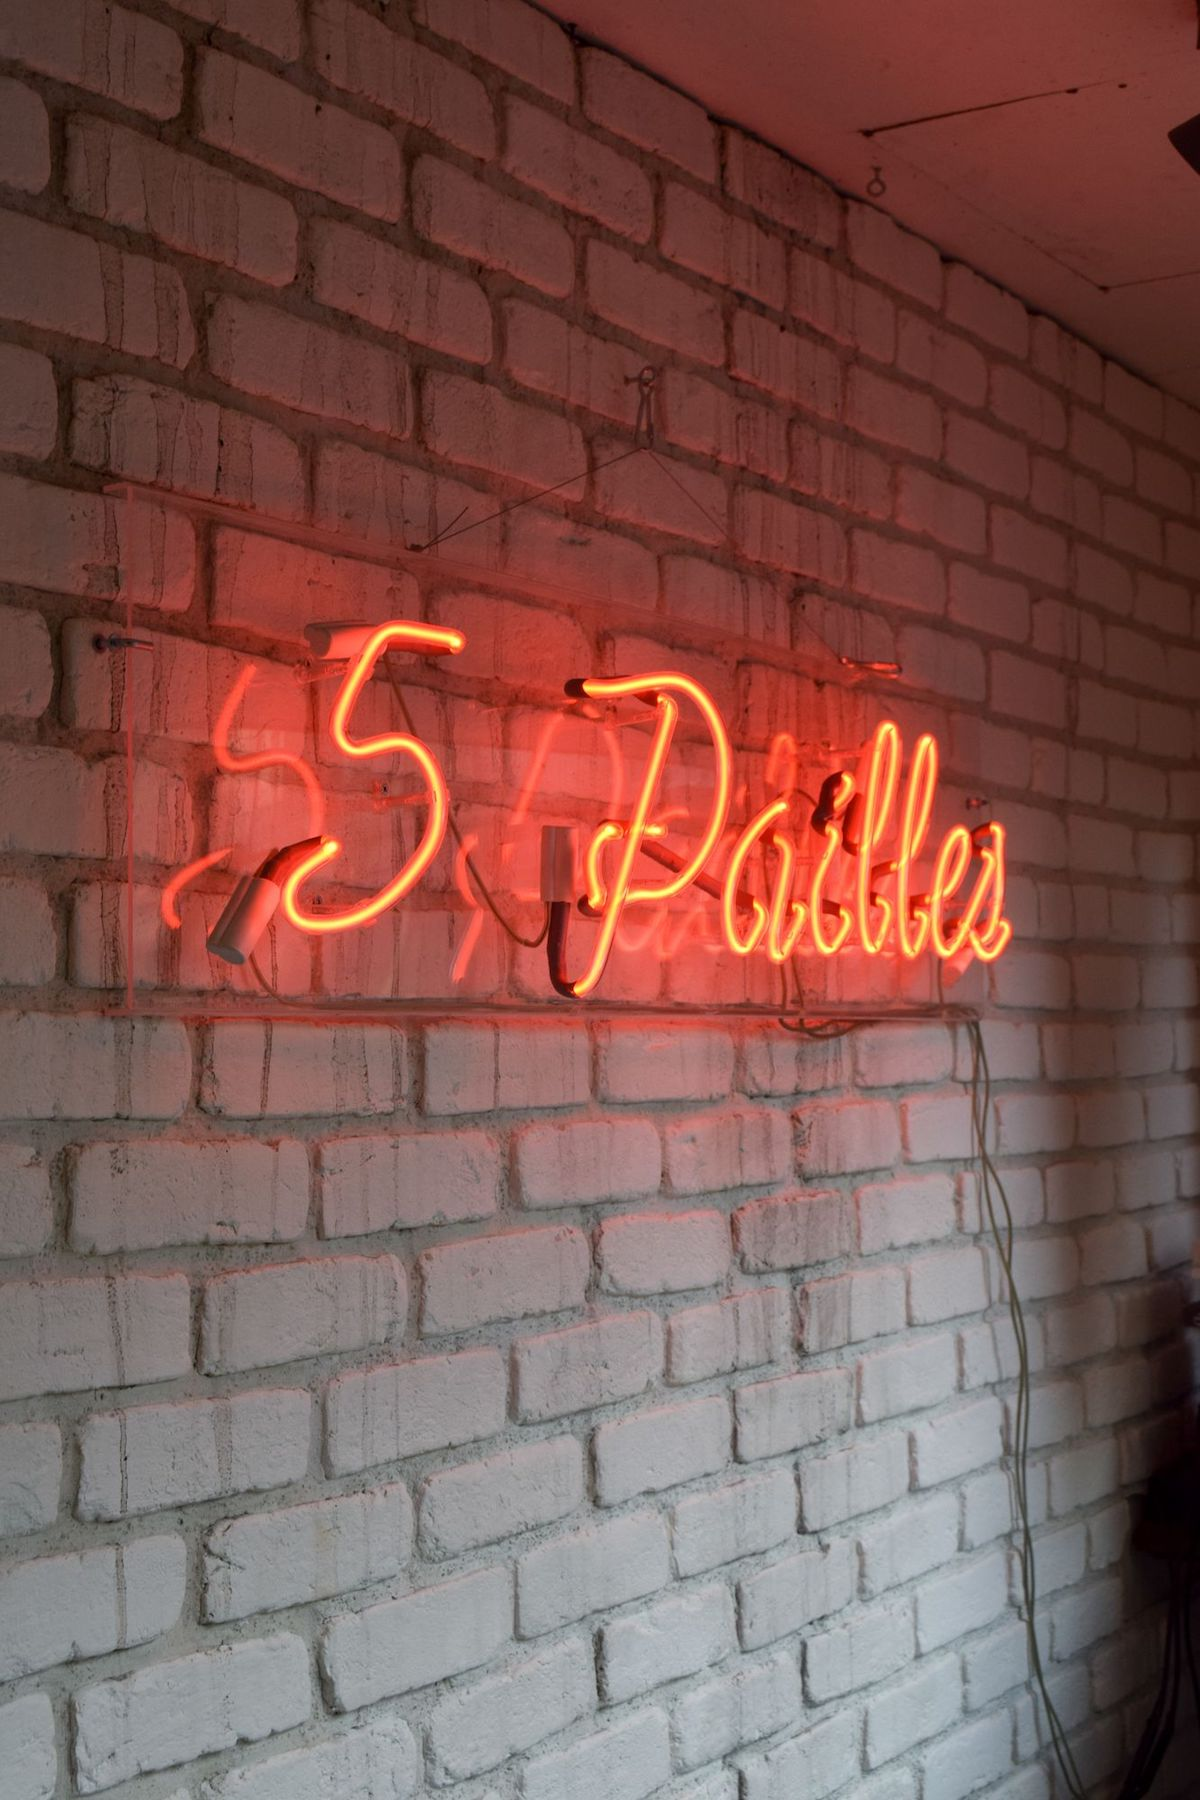 5 Pailles Coffee Neon Sign, Paris